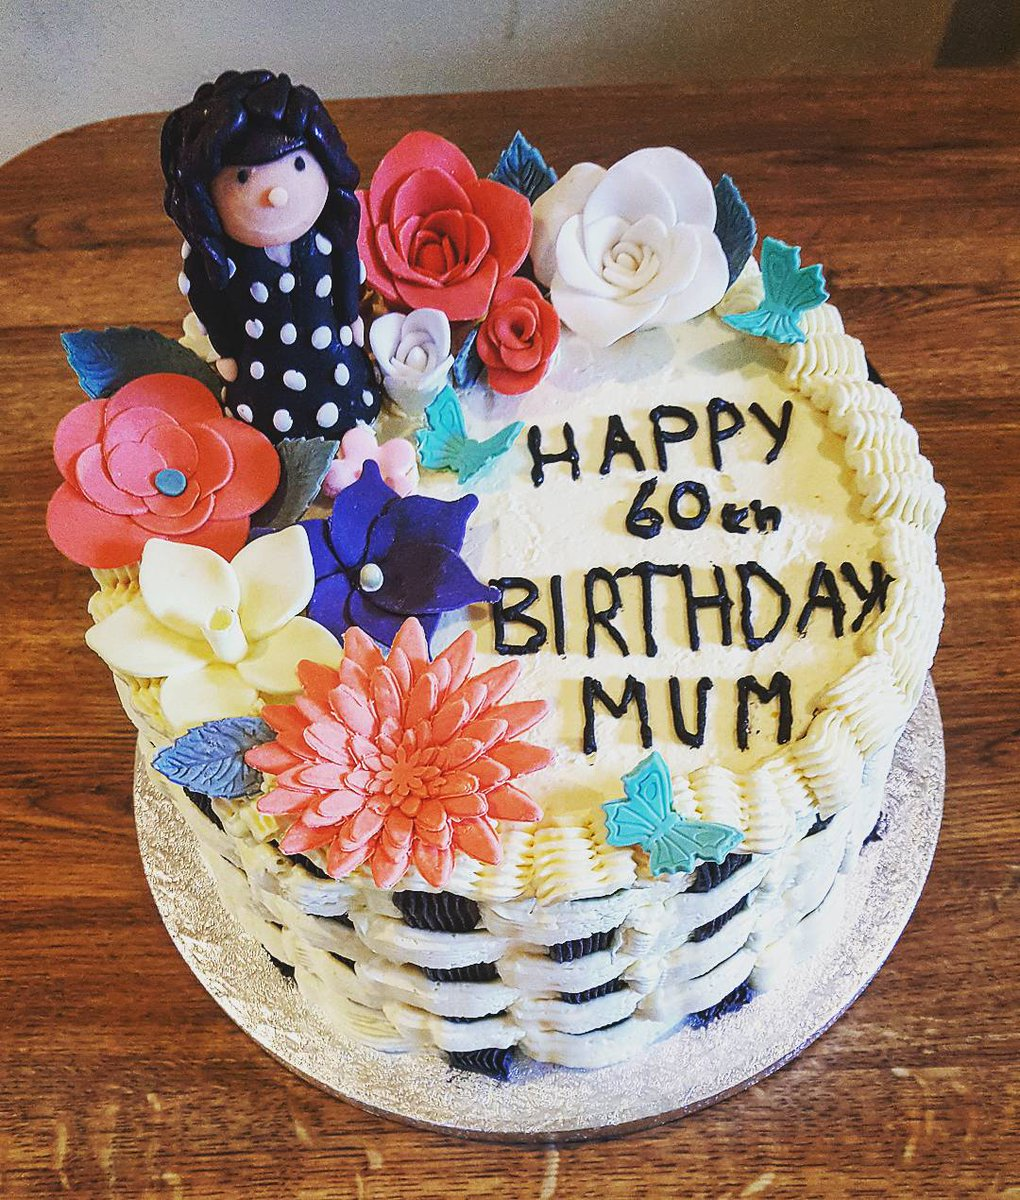 Cakemydayie On Twitter Say It With Flowers A 60th Birthday Cake